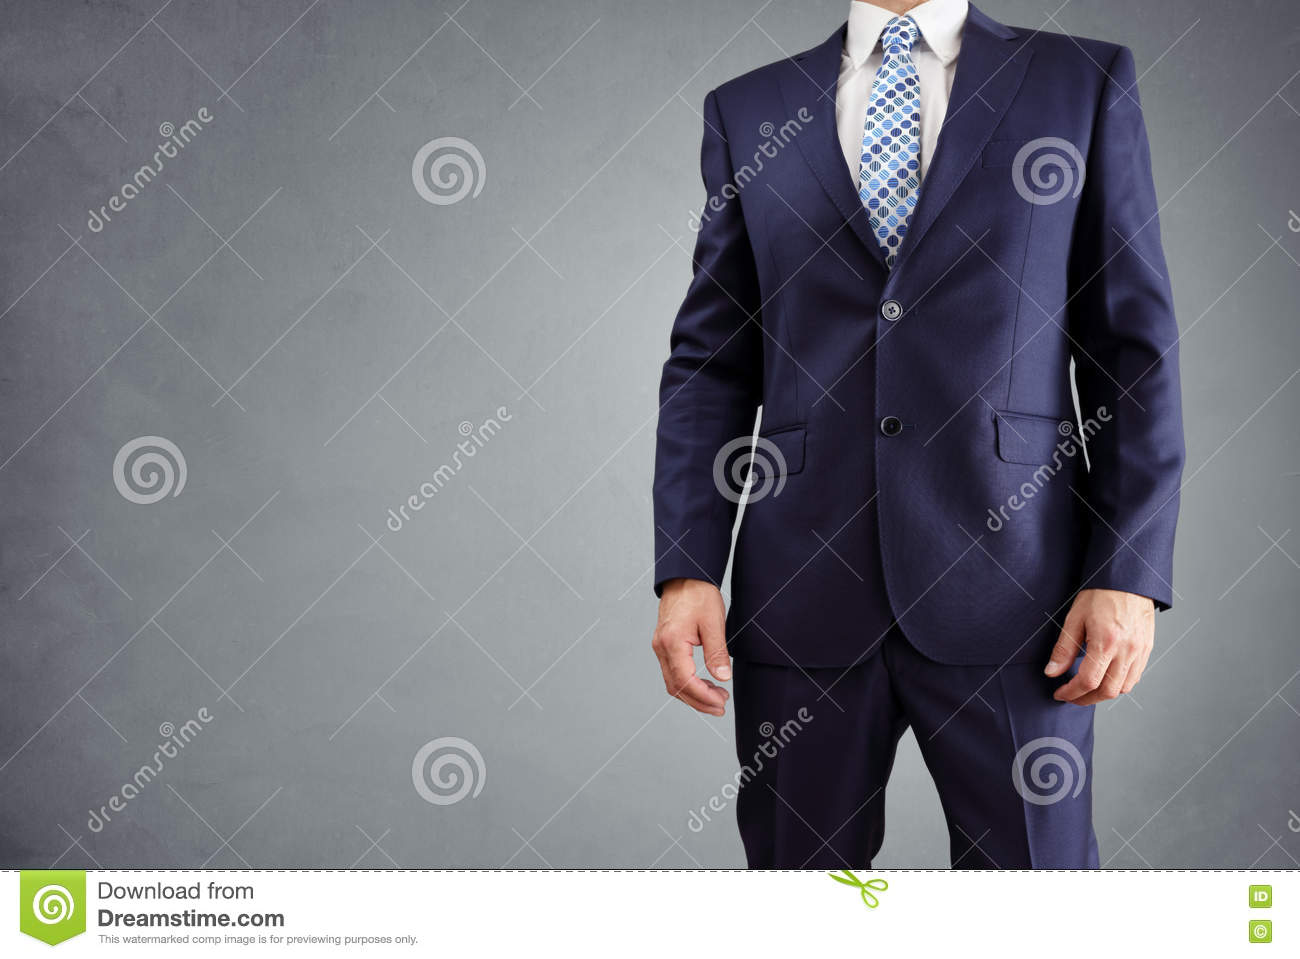 Businessman in a suit isolated on gray background